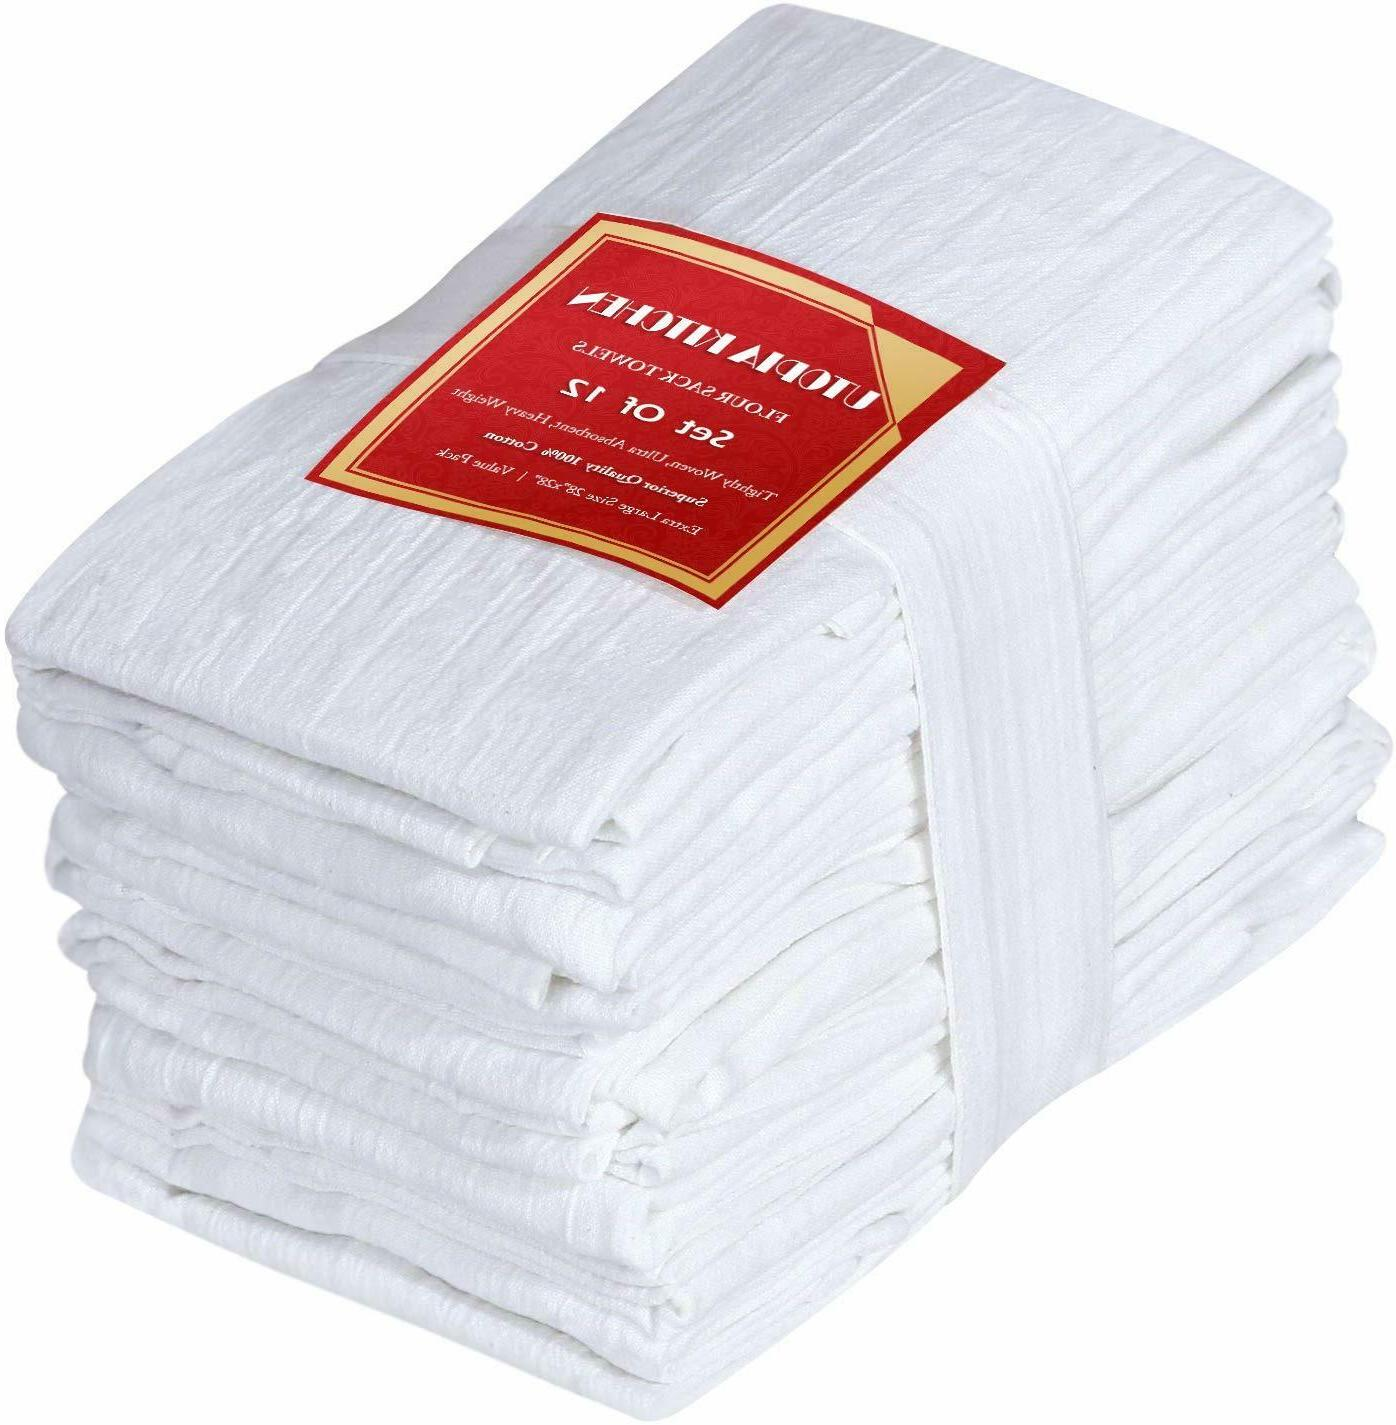 12 pack flour sack towels100 percent pure